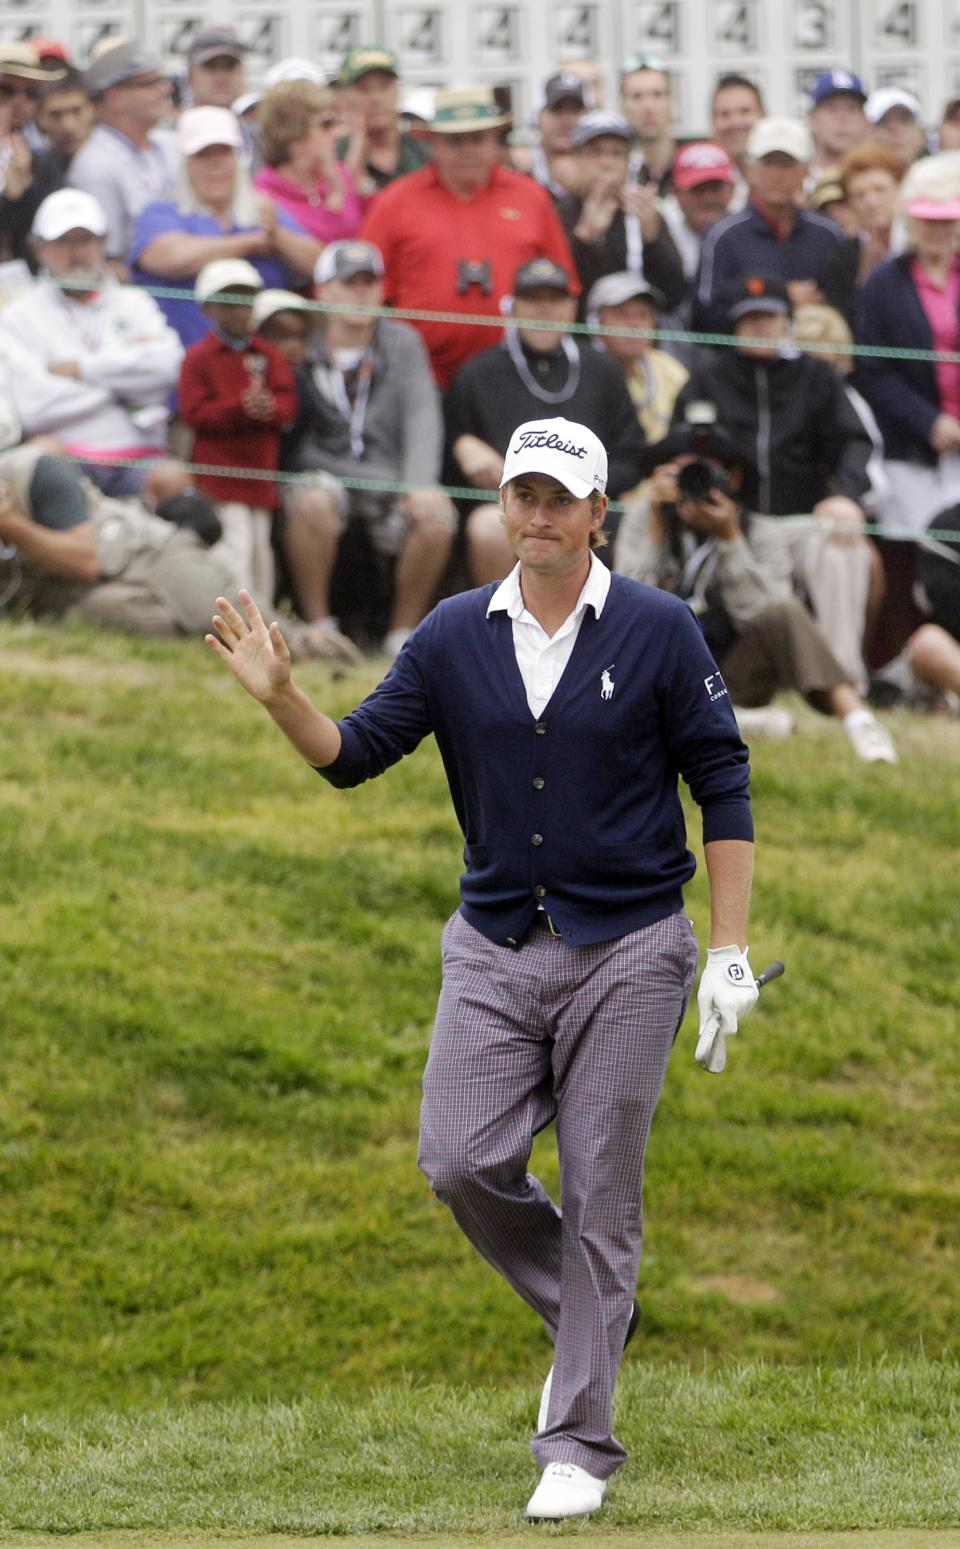 Webb Simpson waves after chipping on the 18th hole during the fourth round of the U.S. Open Championship golf tournament Sunday, June 17, 2012, at The Olympic Club in San Francisco. (AP Photo/Ben Margot)